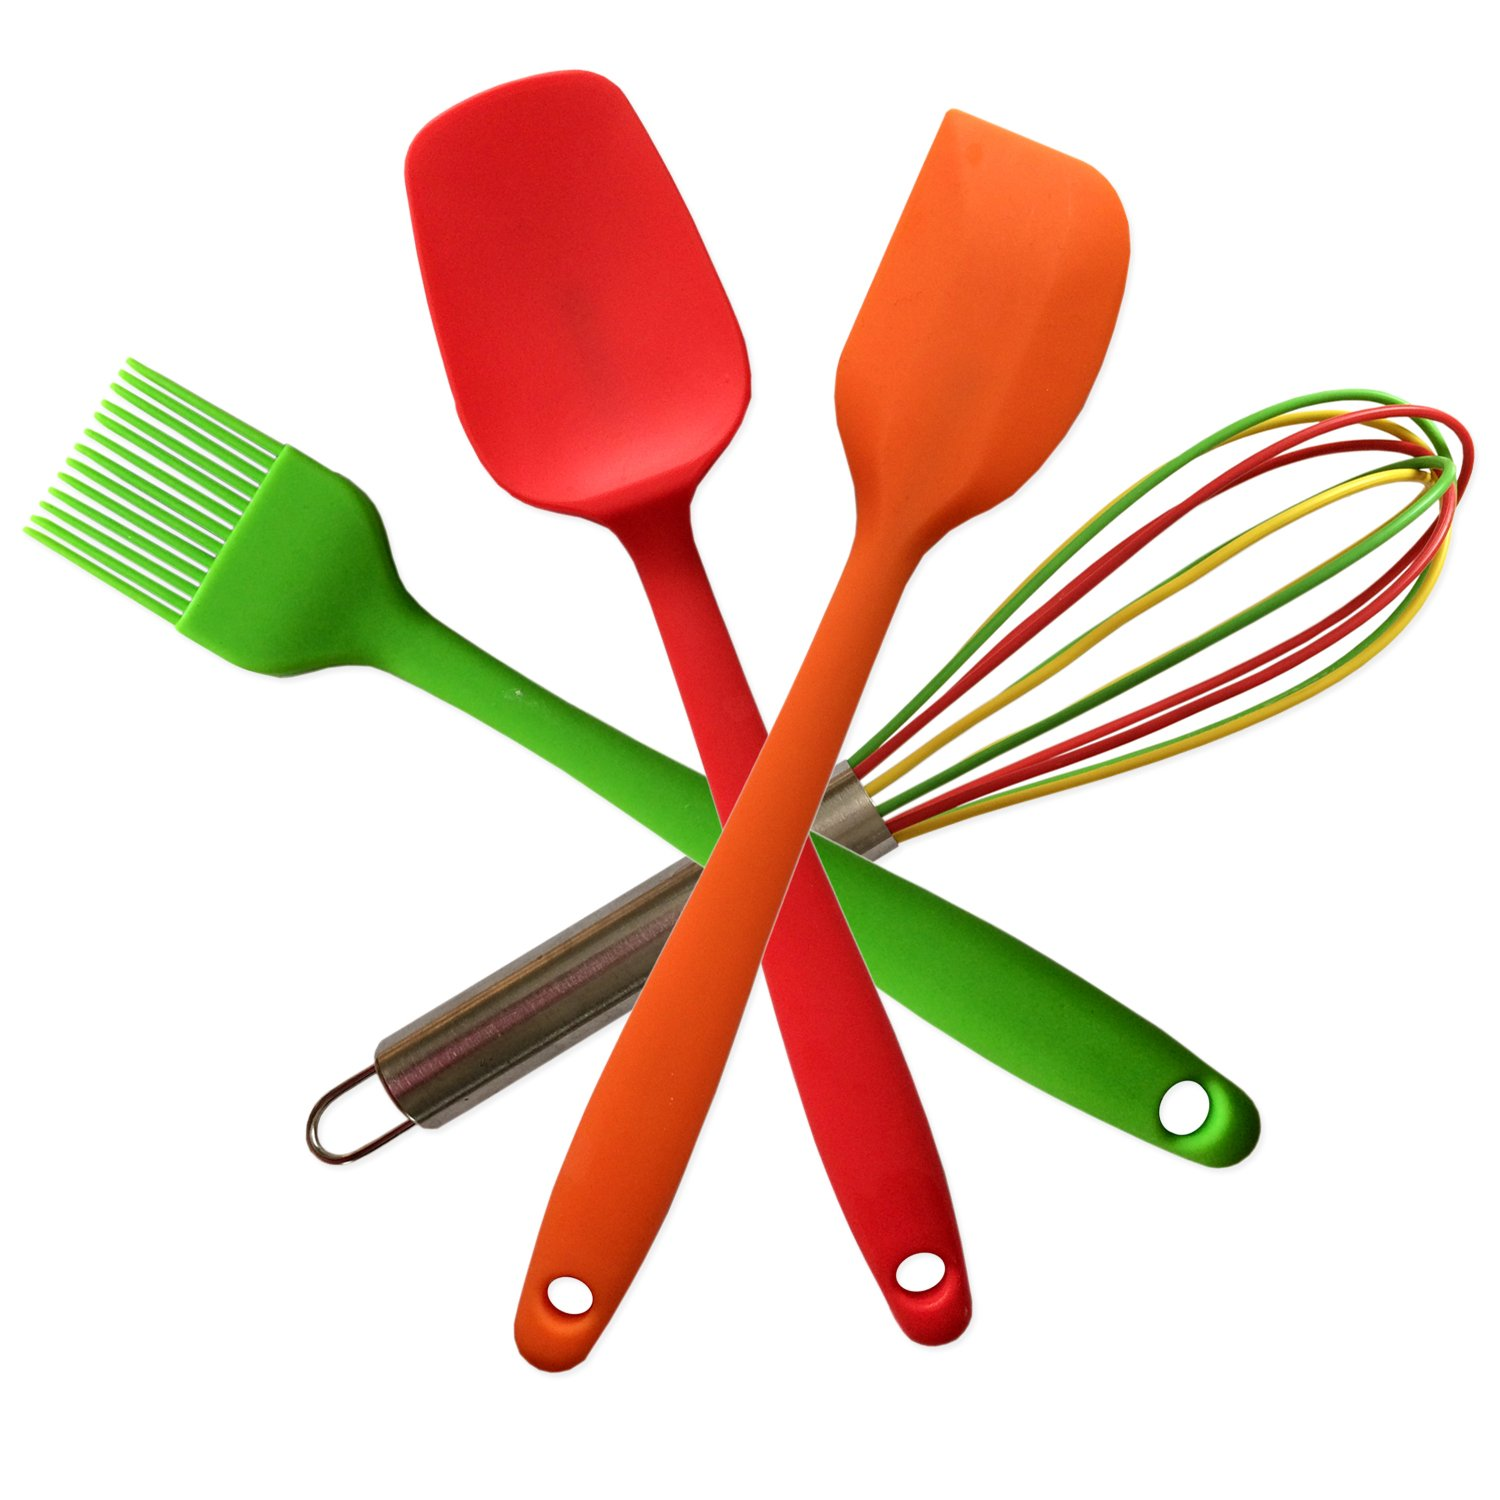 Awesome Amazon.com: Perfect Kitchen Utensils For Kids Divine Delights Silicone  Cooking Utensils Gift Set, Hygienic, Durable, Non Stick, Heat Resistan, ...